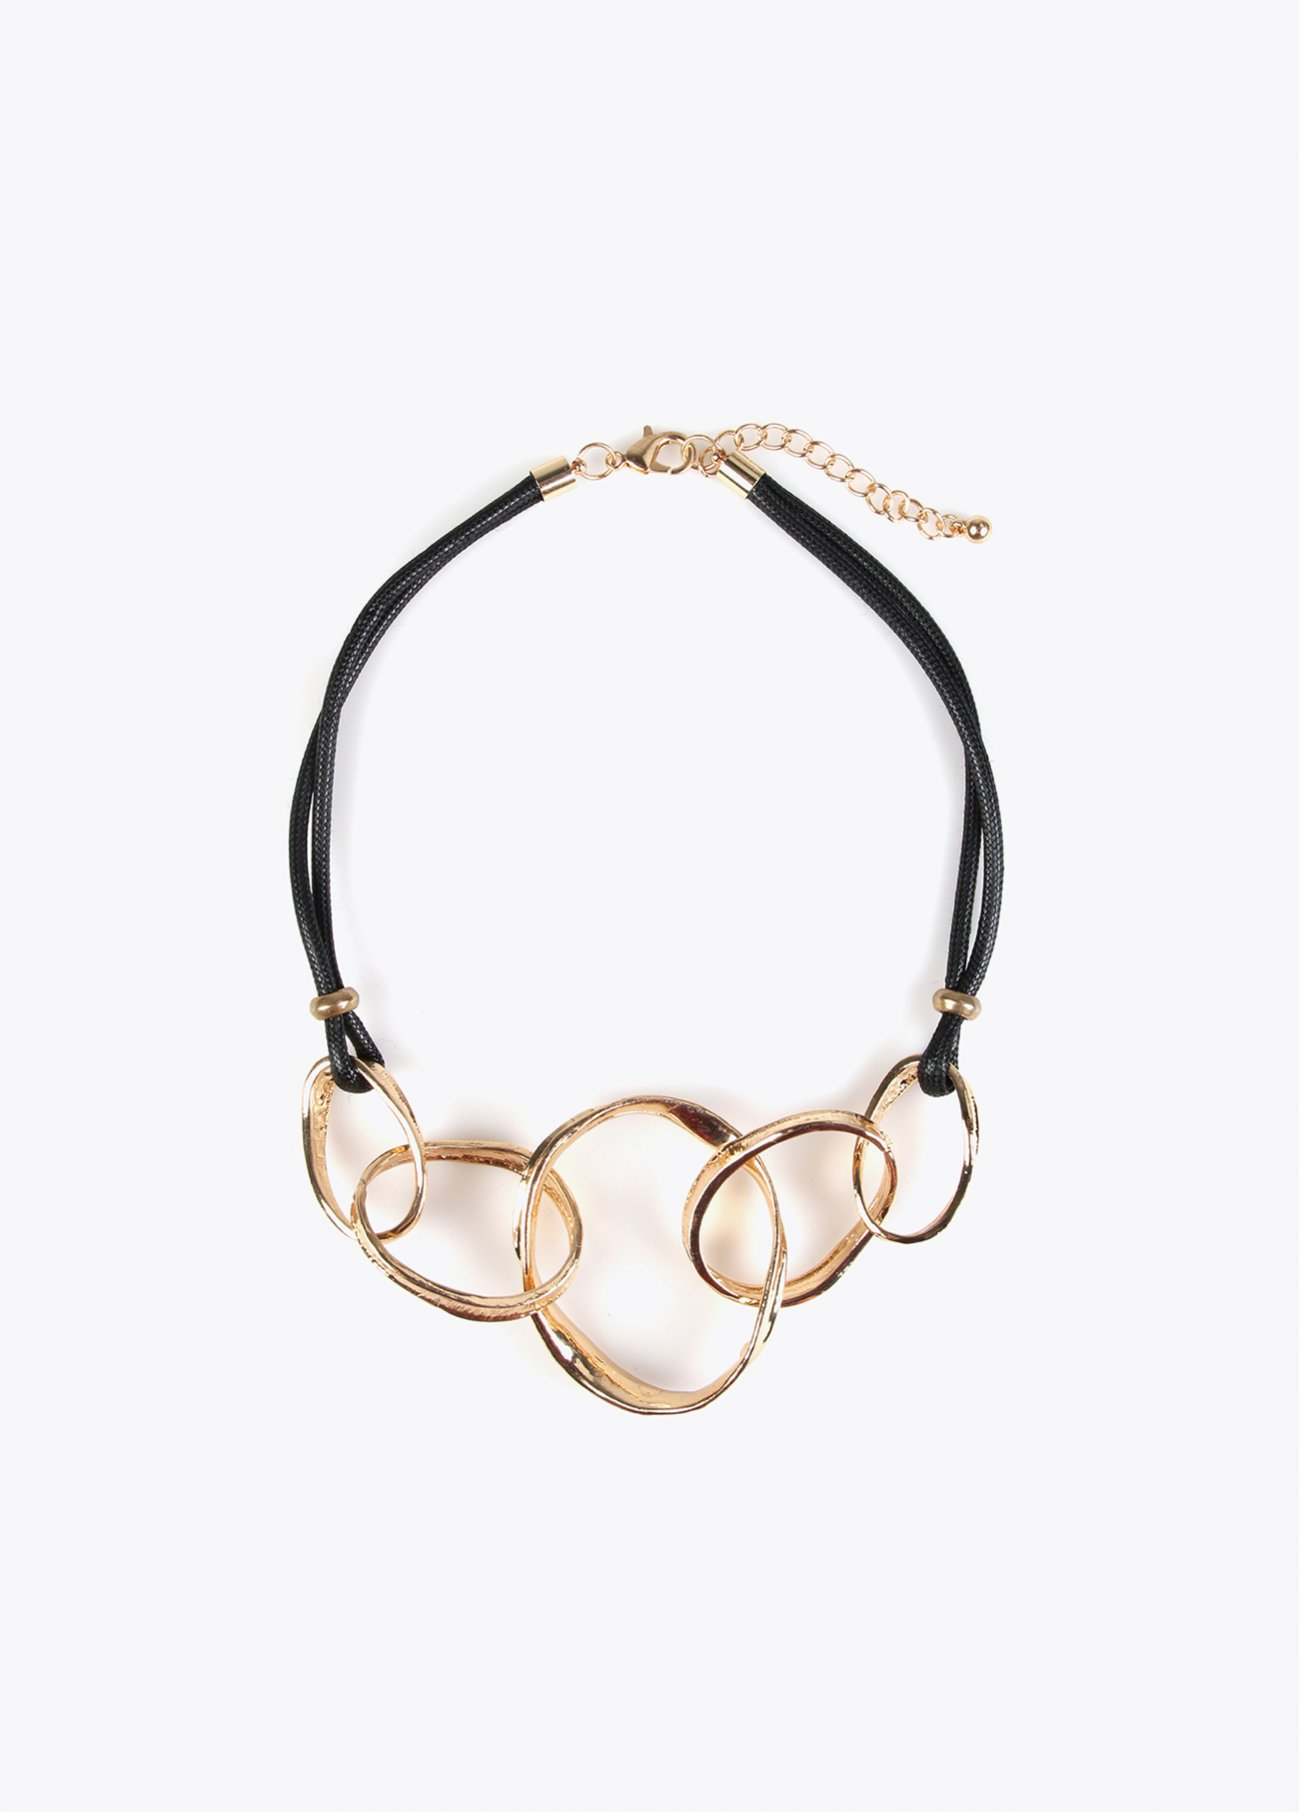 Short necklace with golden rings